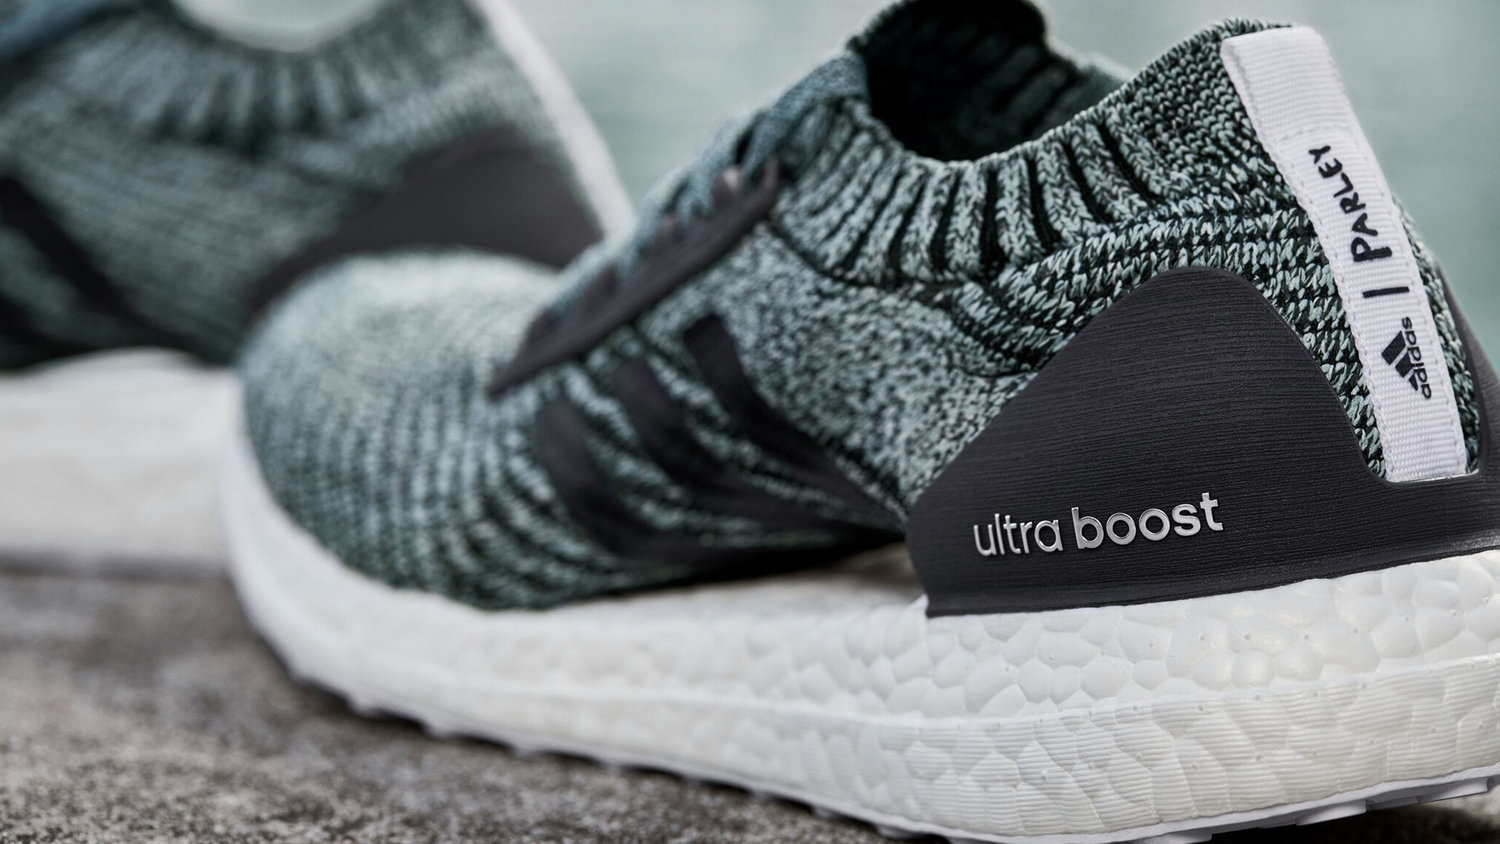 adidas ULTRABOOST PARLEY | Upcycling deluxe - From Threat into Thread